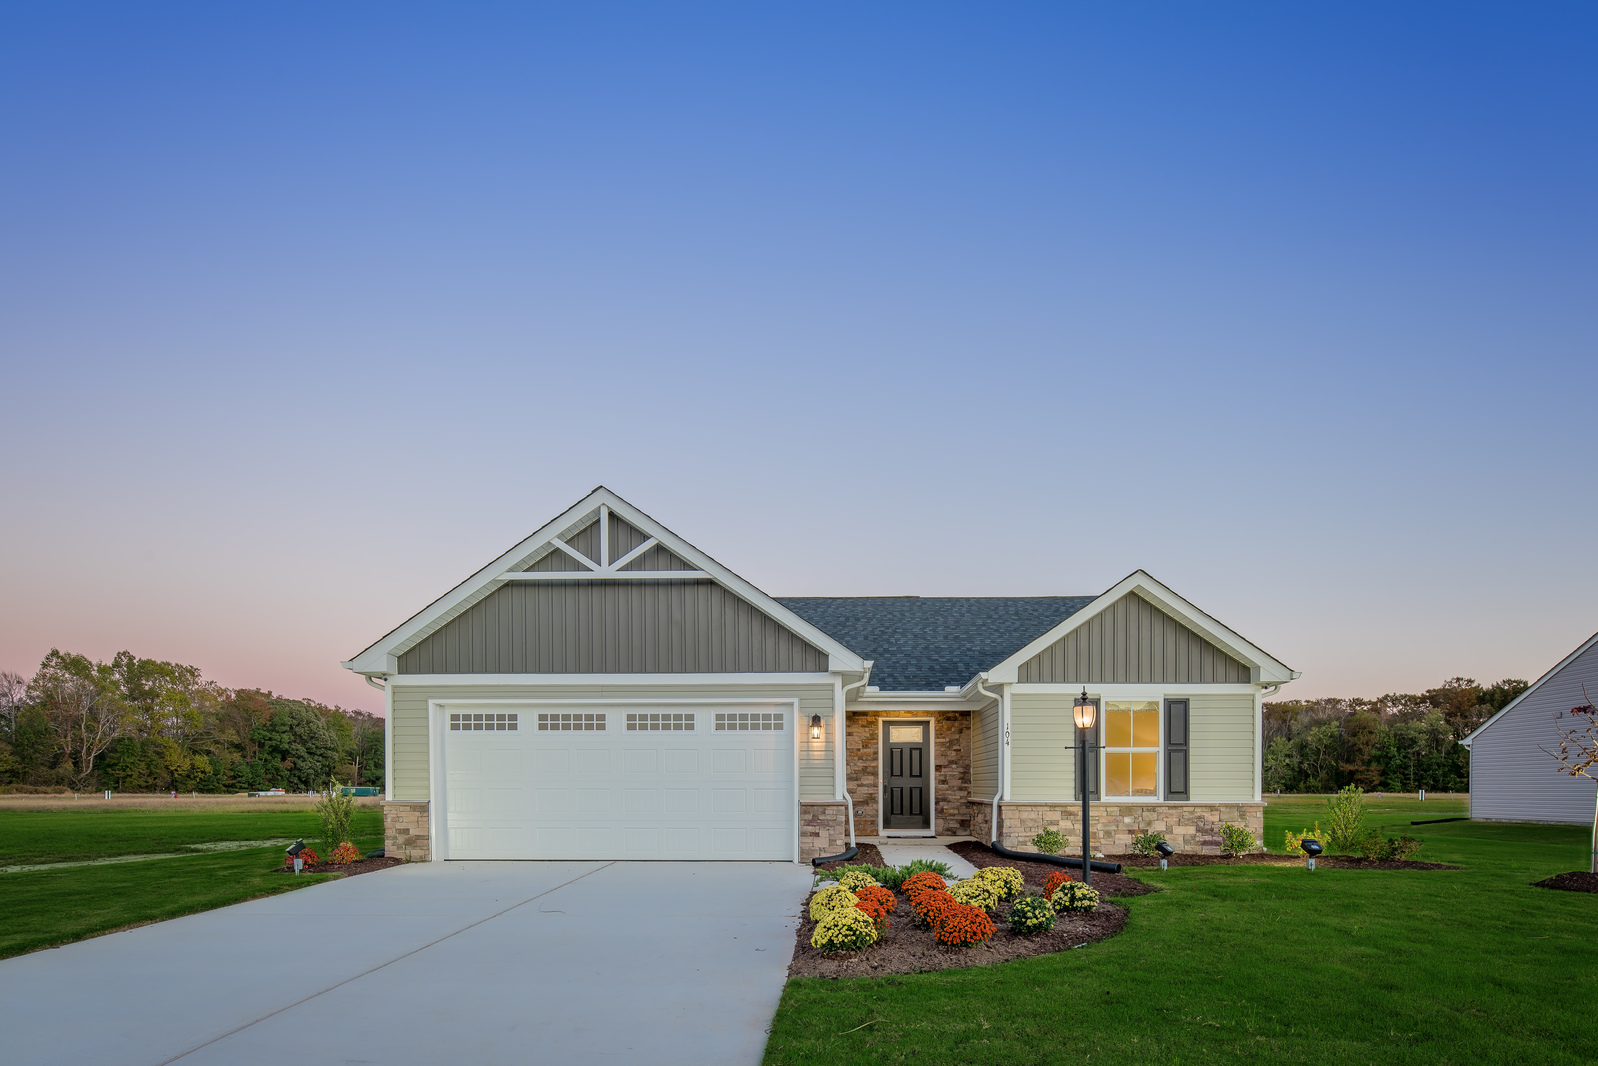 We Sold 52 Homes In Just 1 Year! Only 1 Home Remains.u0026nbsp;